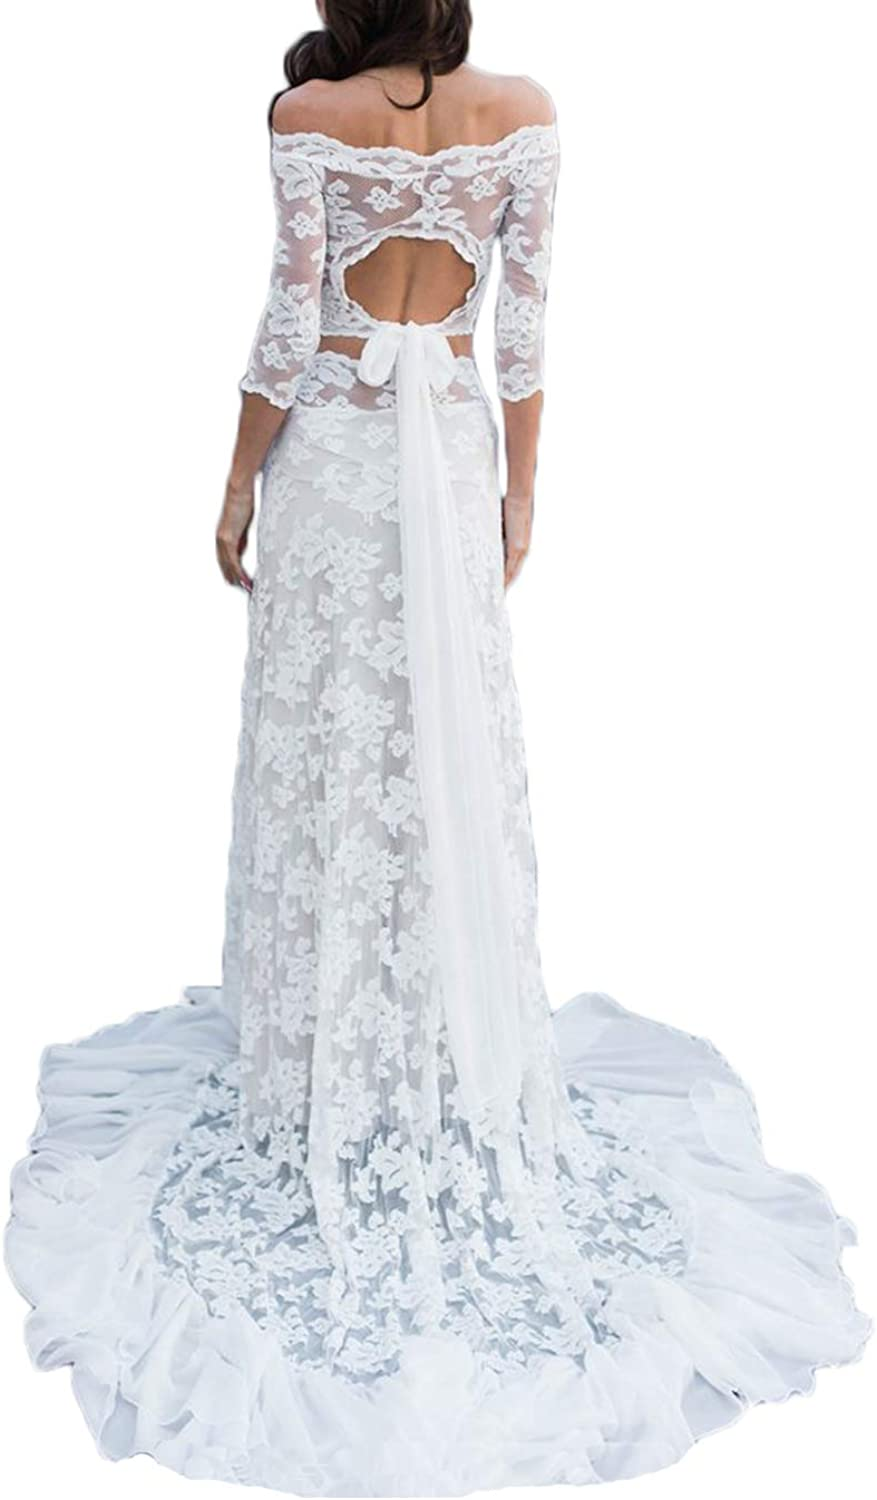 Alilith.Z Off The Shoulder Lace Wedding Dresses for Bride 3 4 Sleeves Mermaid 2 Piece Beach Bohemian Bridal Wedding Gowns